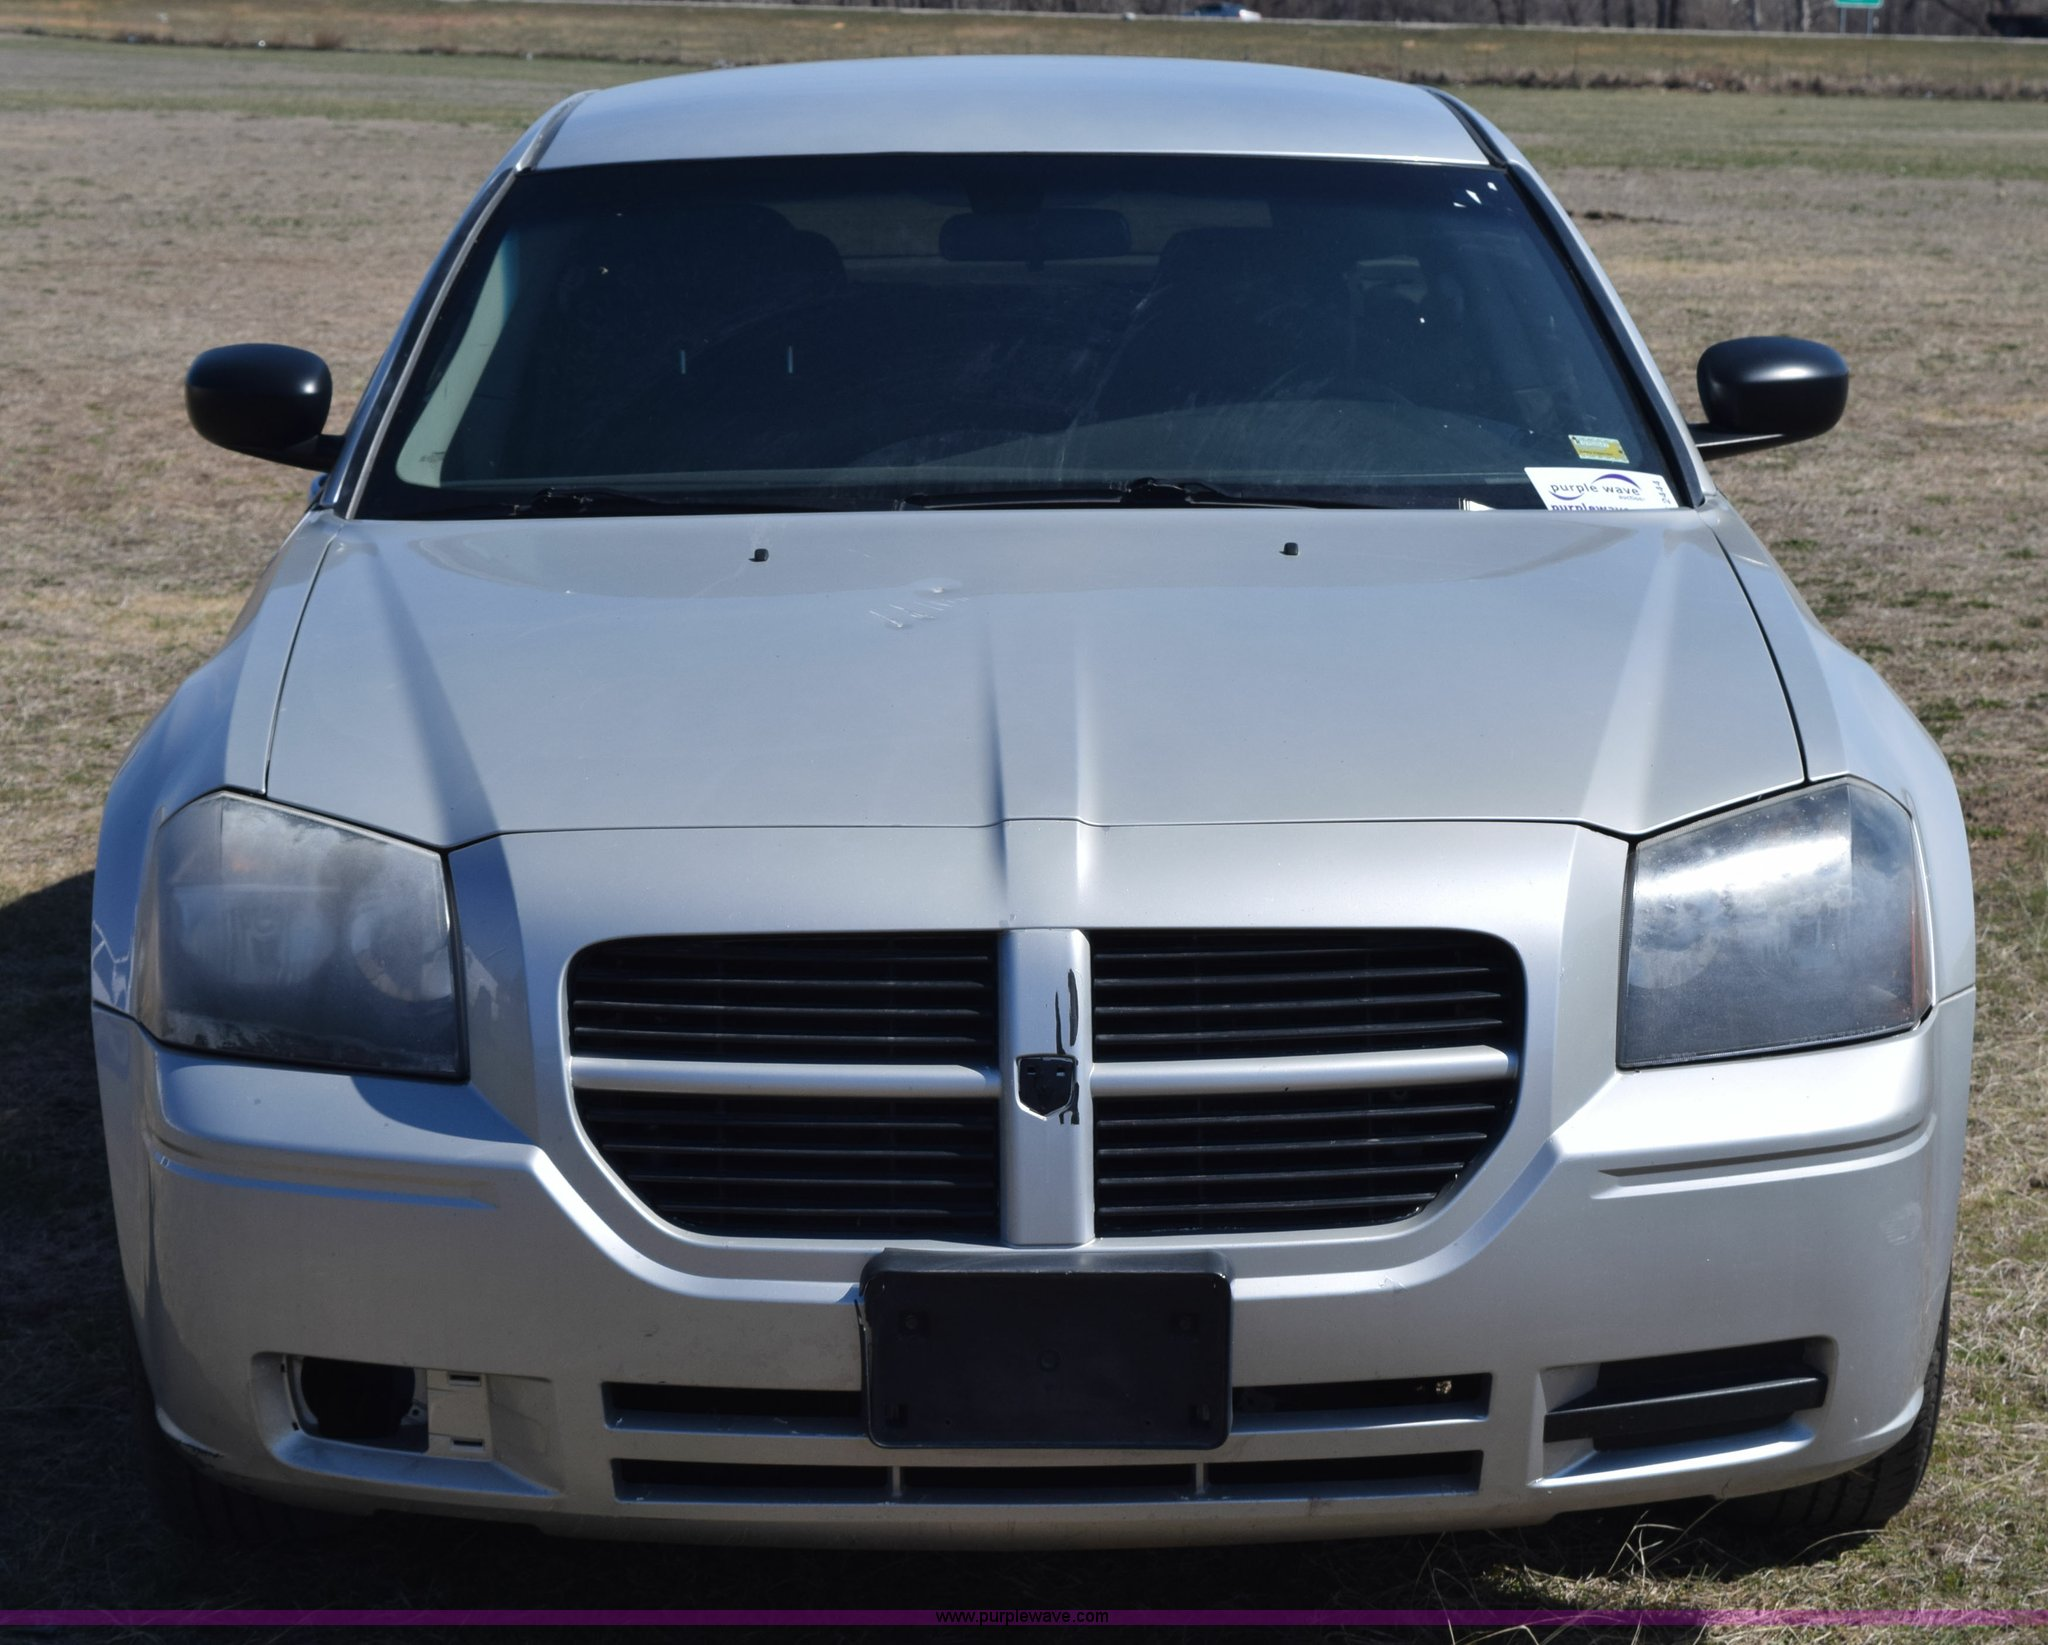 otoriyoce phone miles sale amazing dodge com dougs magnum with black for